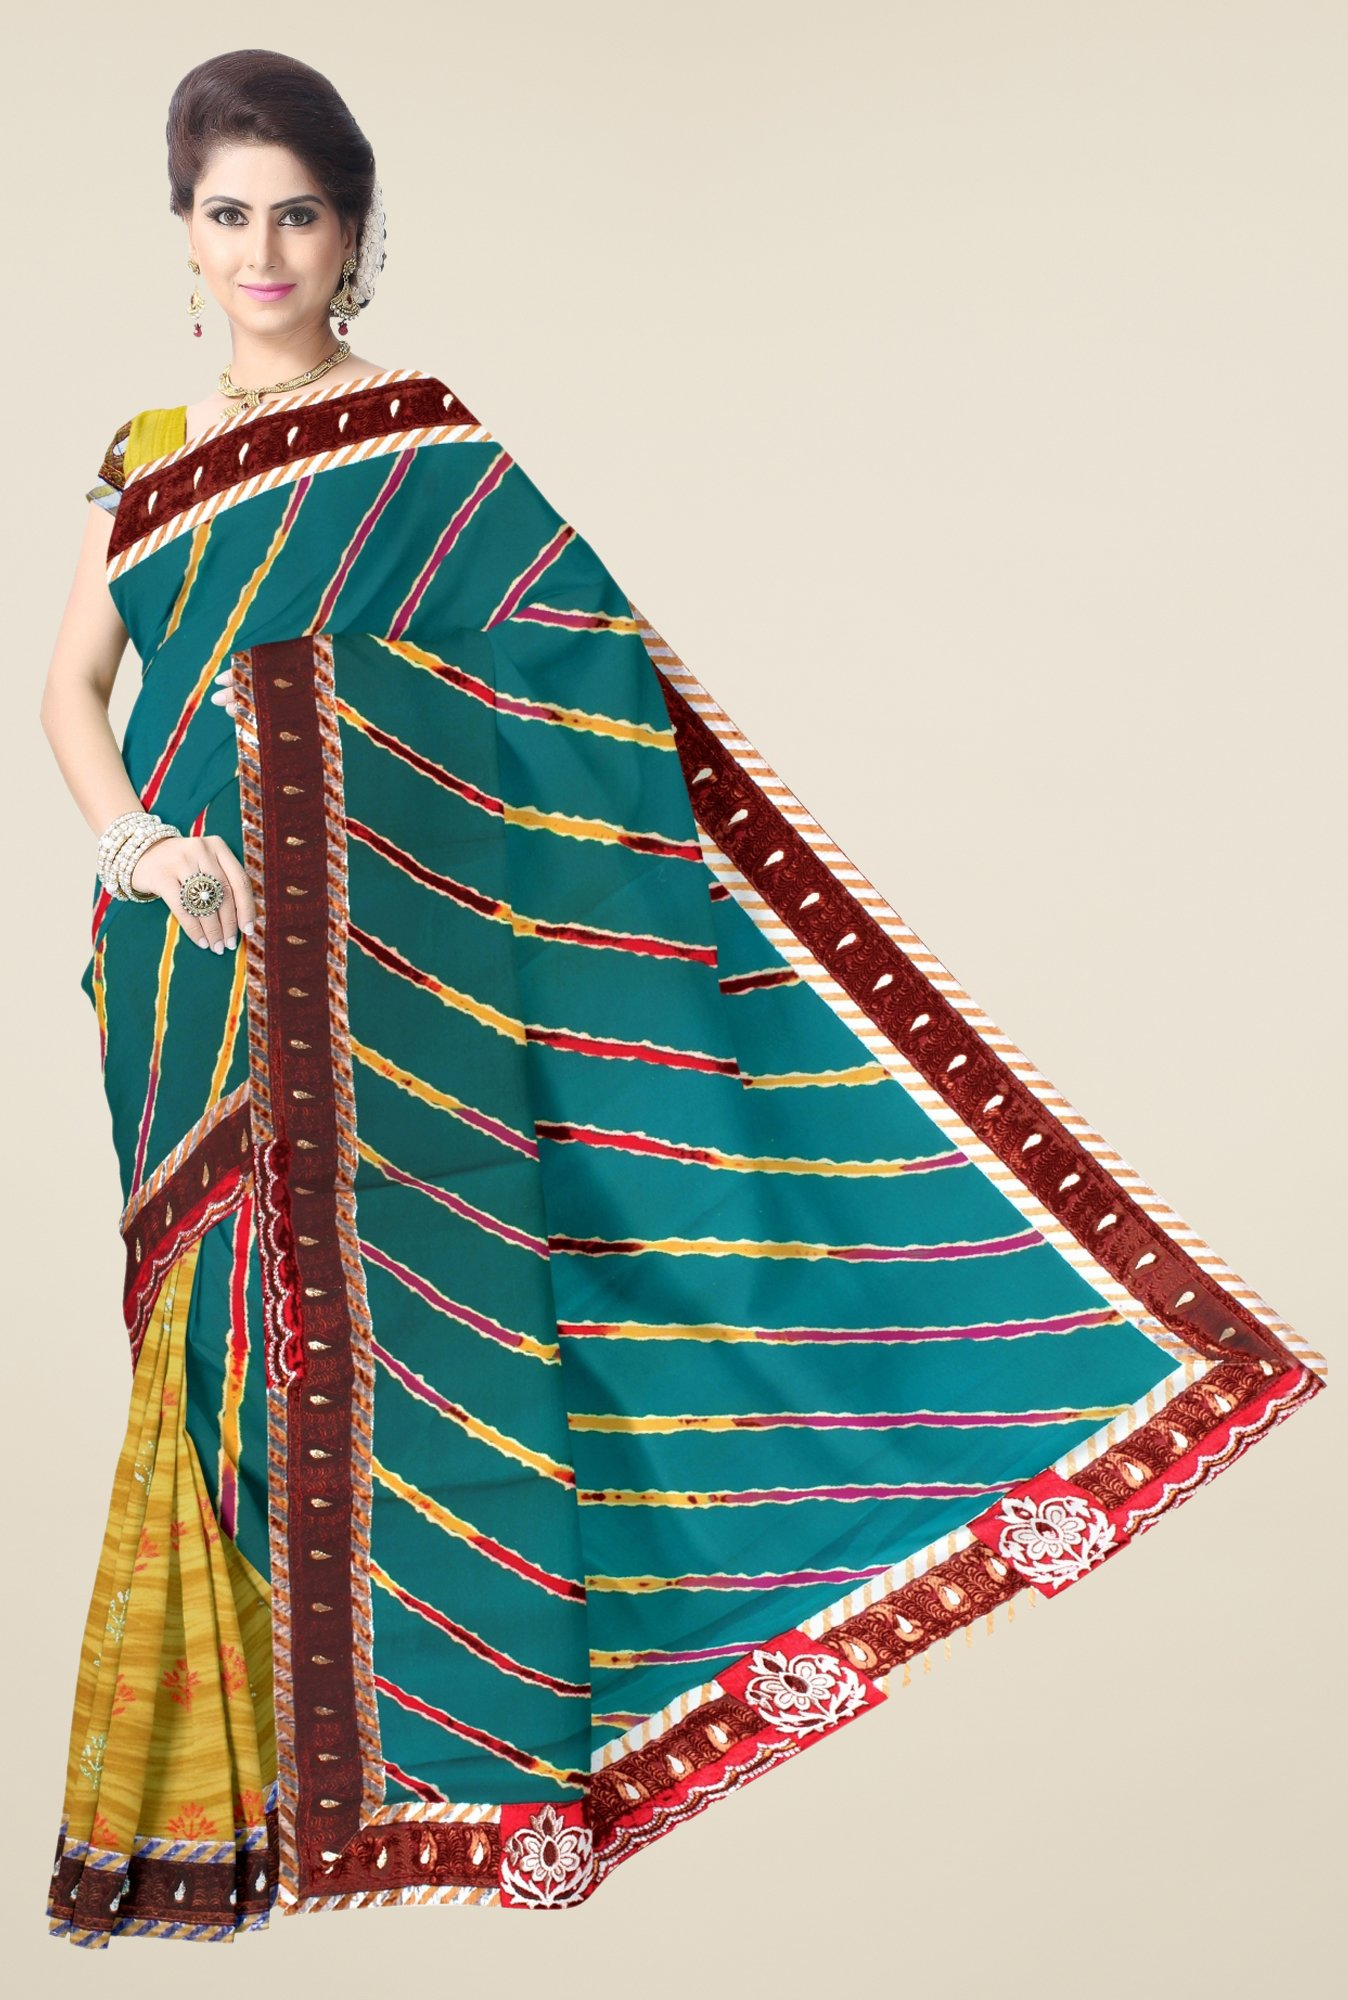 Triveni Yellow & Green Printed Faux Georgette Saree